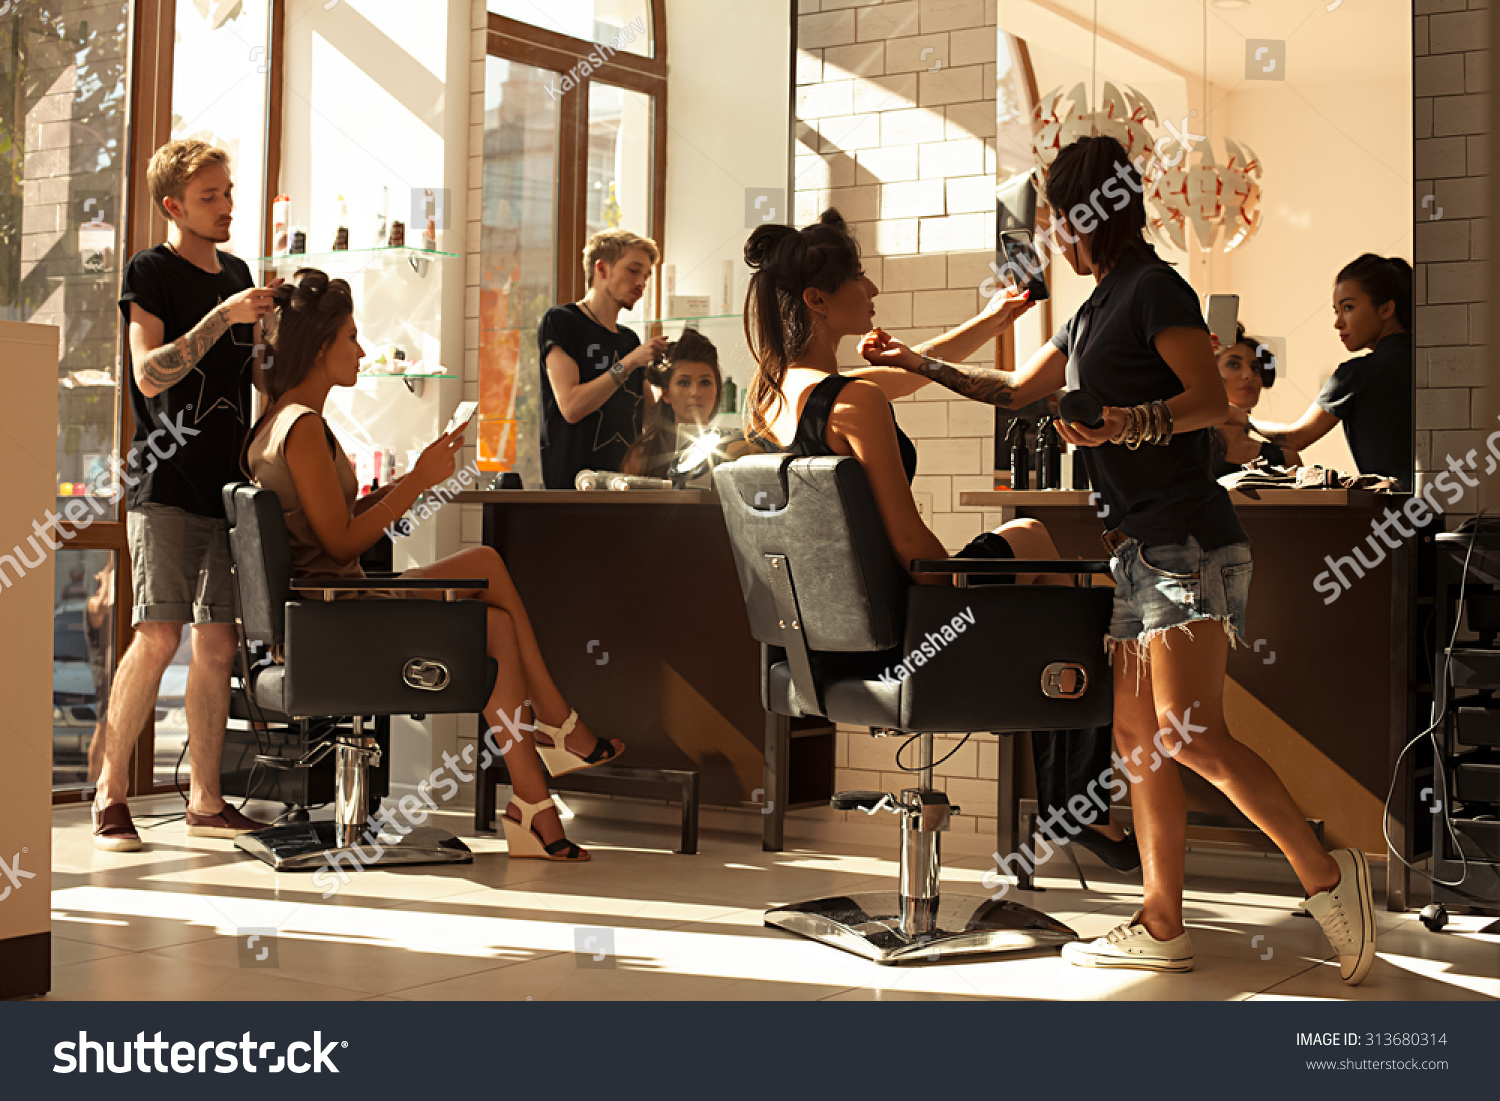 Picture of working day inside the beauty- sit on two chairs clients beautiful young girls. Hairdresser makes hair styling or hair cut, make-up artist doing make-up in a beauty salon- stock photo. #313680314